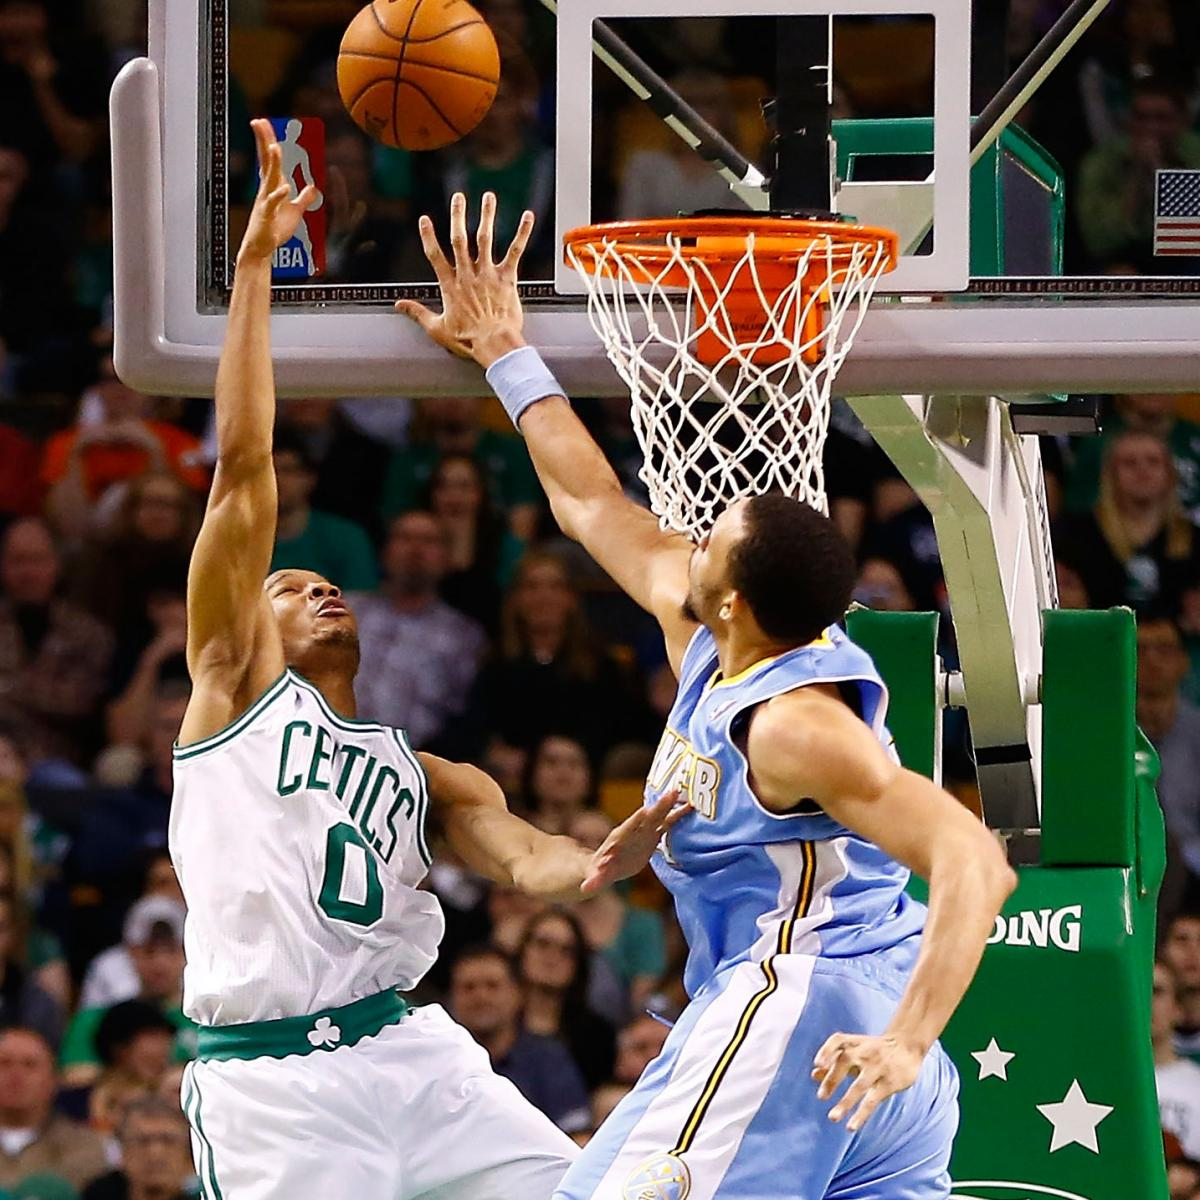 Boston Celtics Vs. Denver Nuggets: Key Player Matchups To